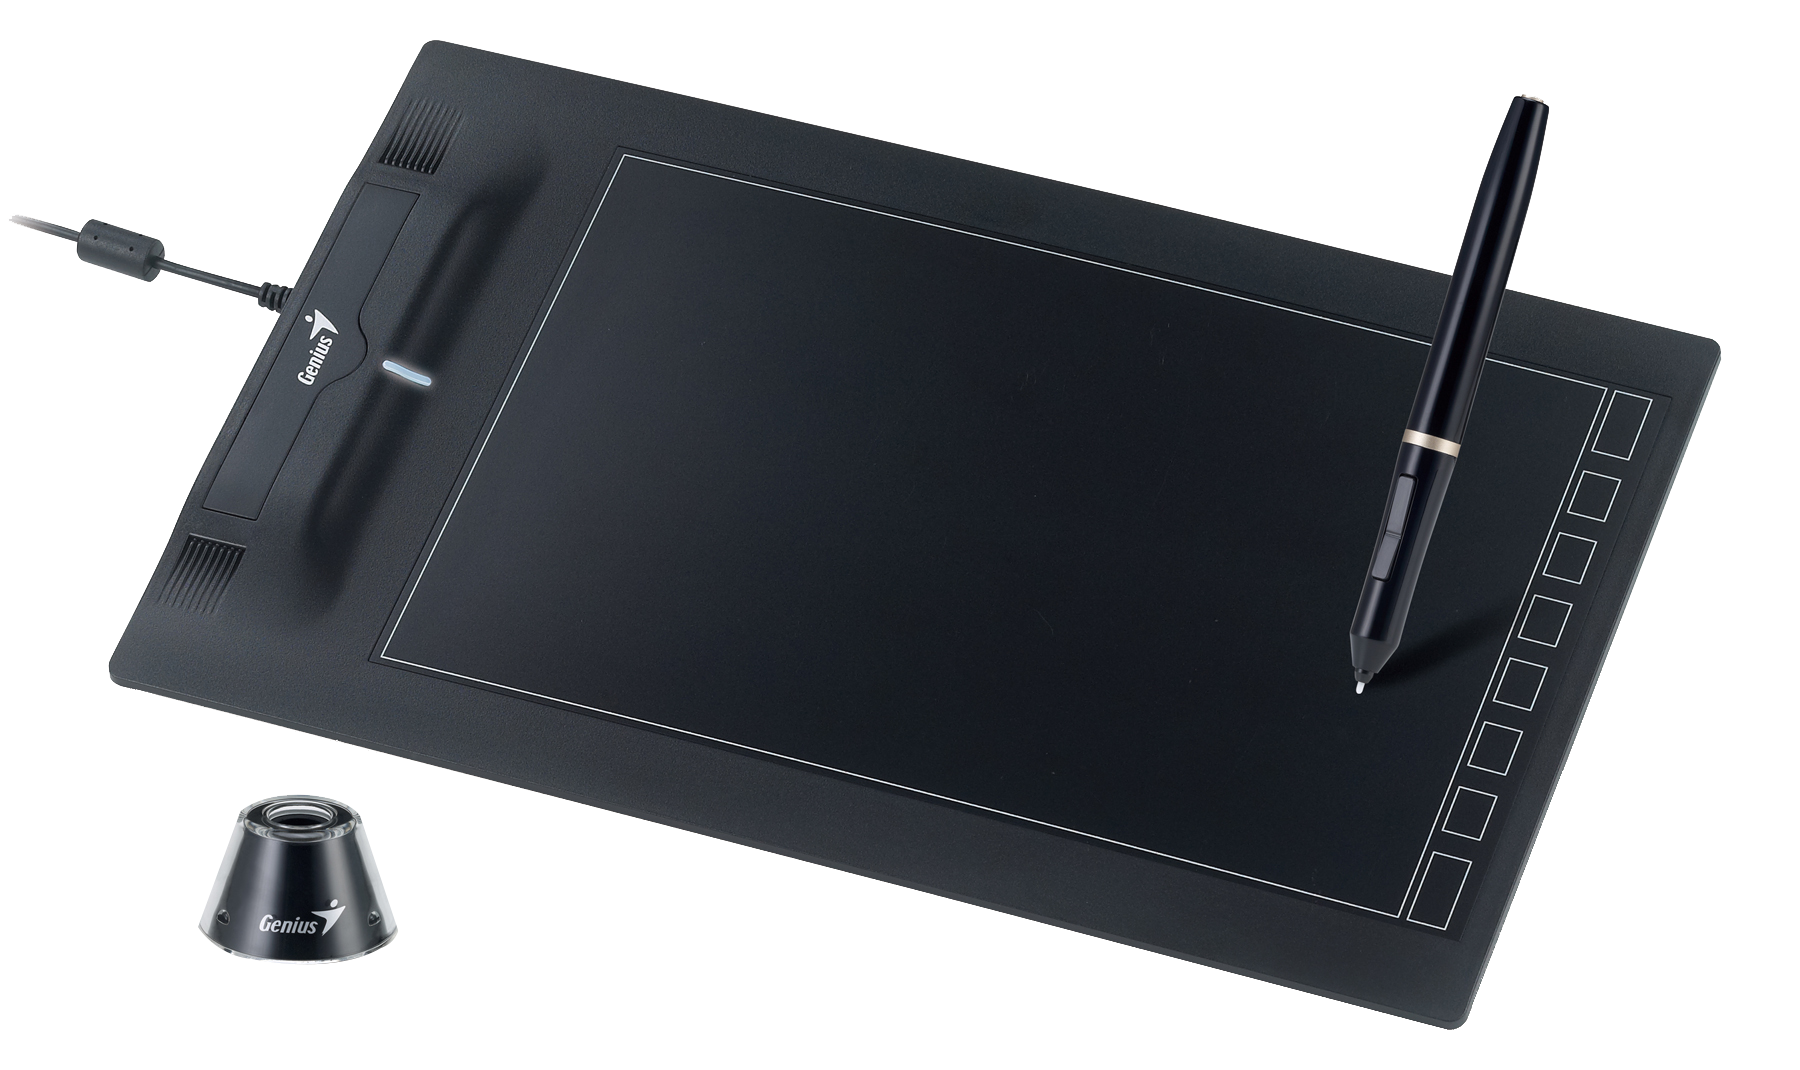 Genius Graphic Tablet Lets You Sketch With Precision